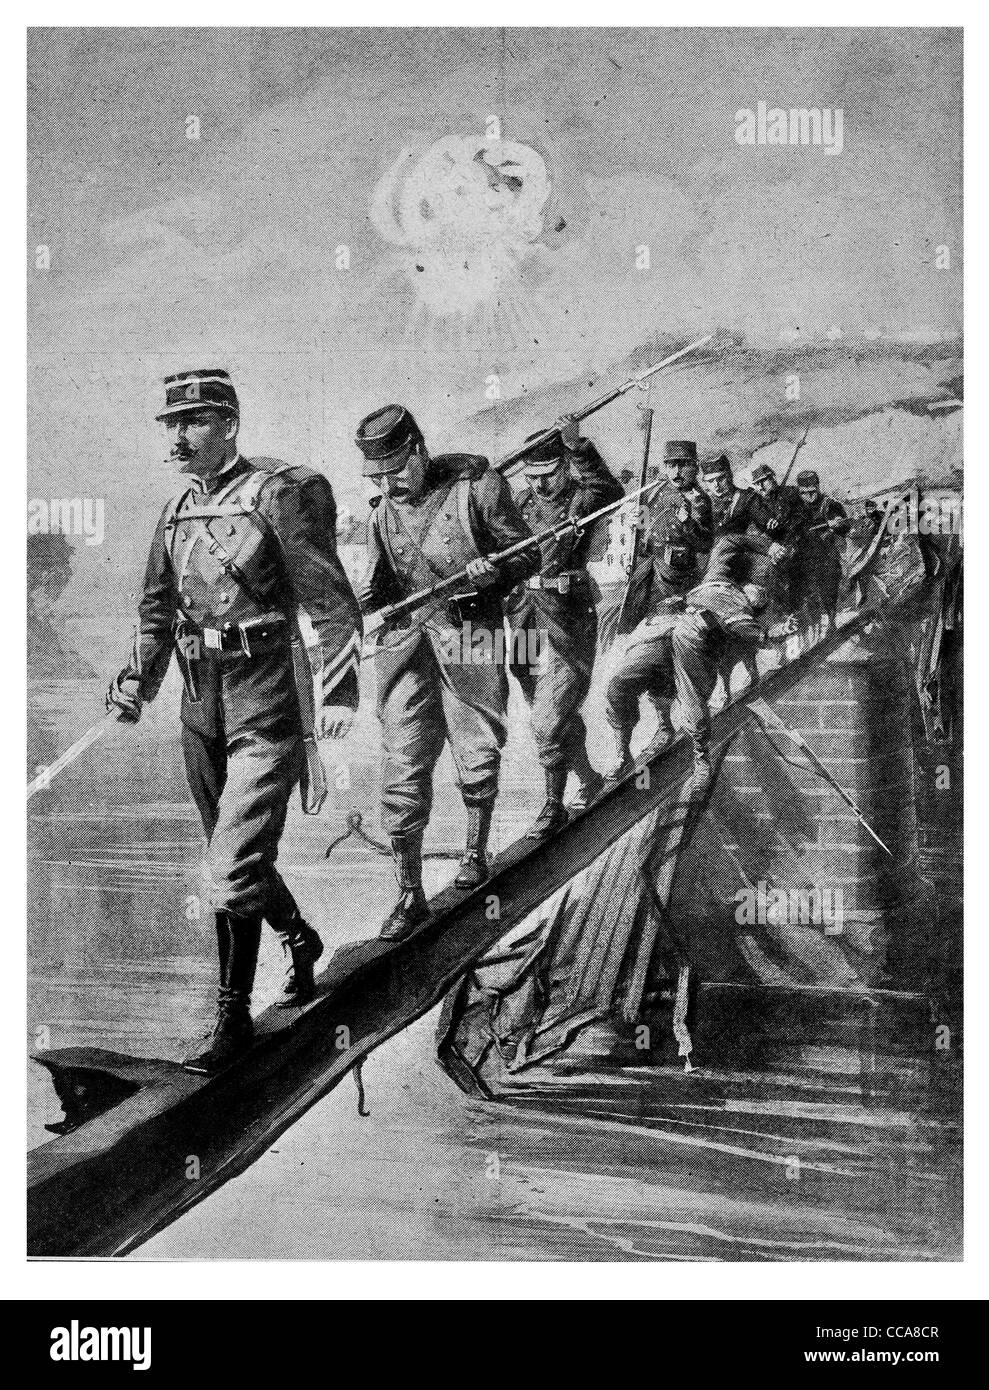 1914 French infantry crossing River Aisne girder of a railway bridge under fire from German France brave explosion - Stock Image